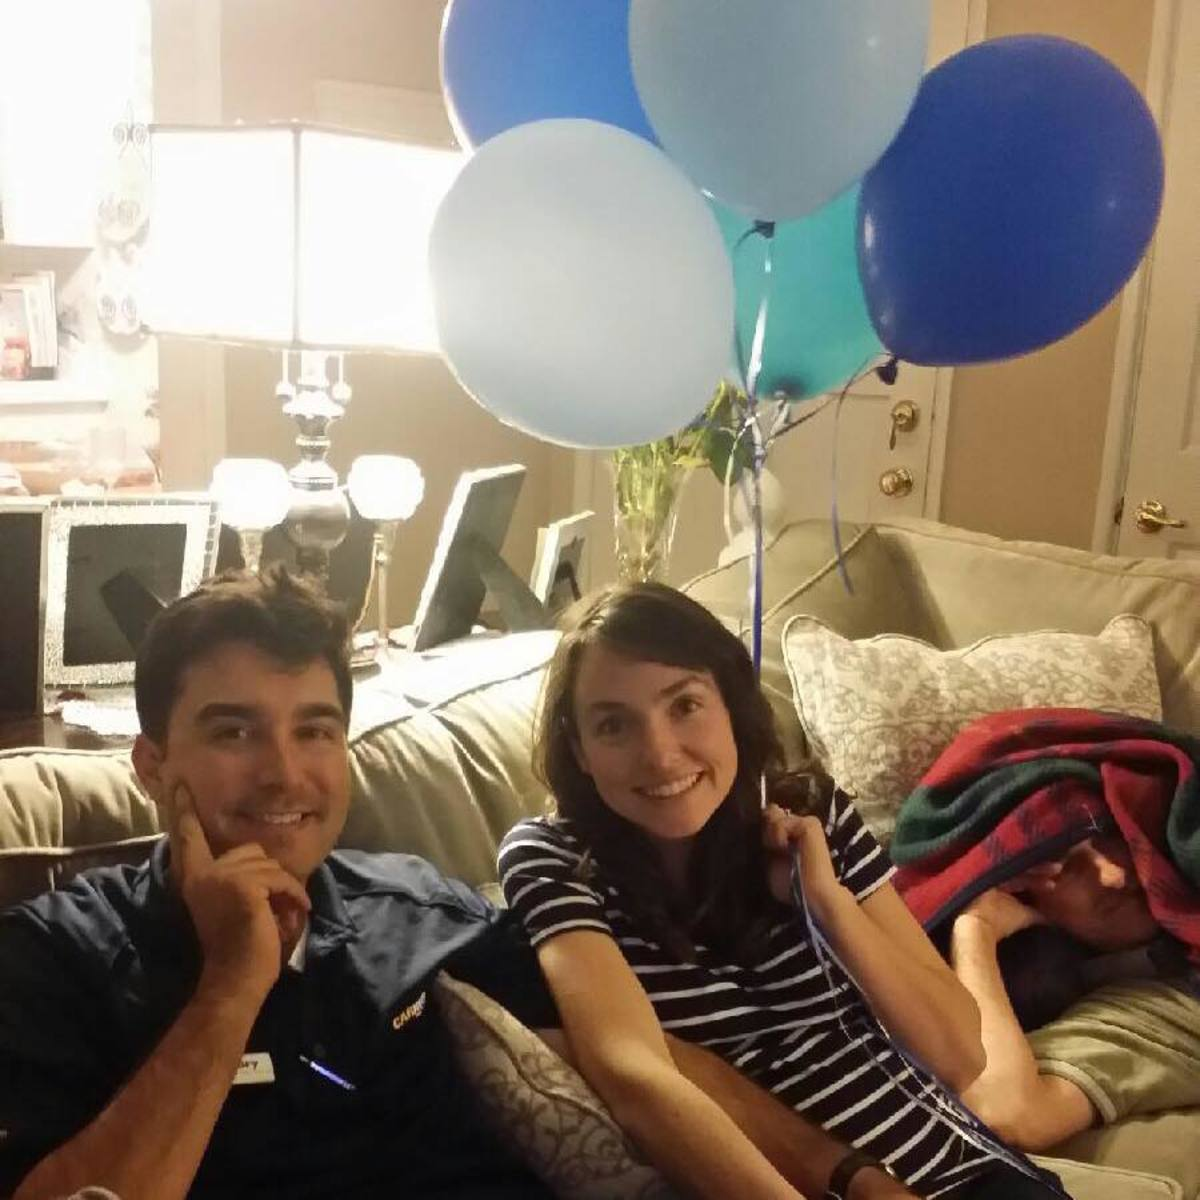 Excited to welcome Baby Boy #2 in October!